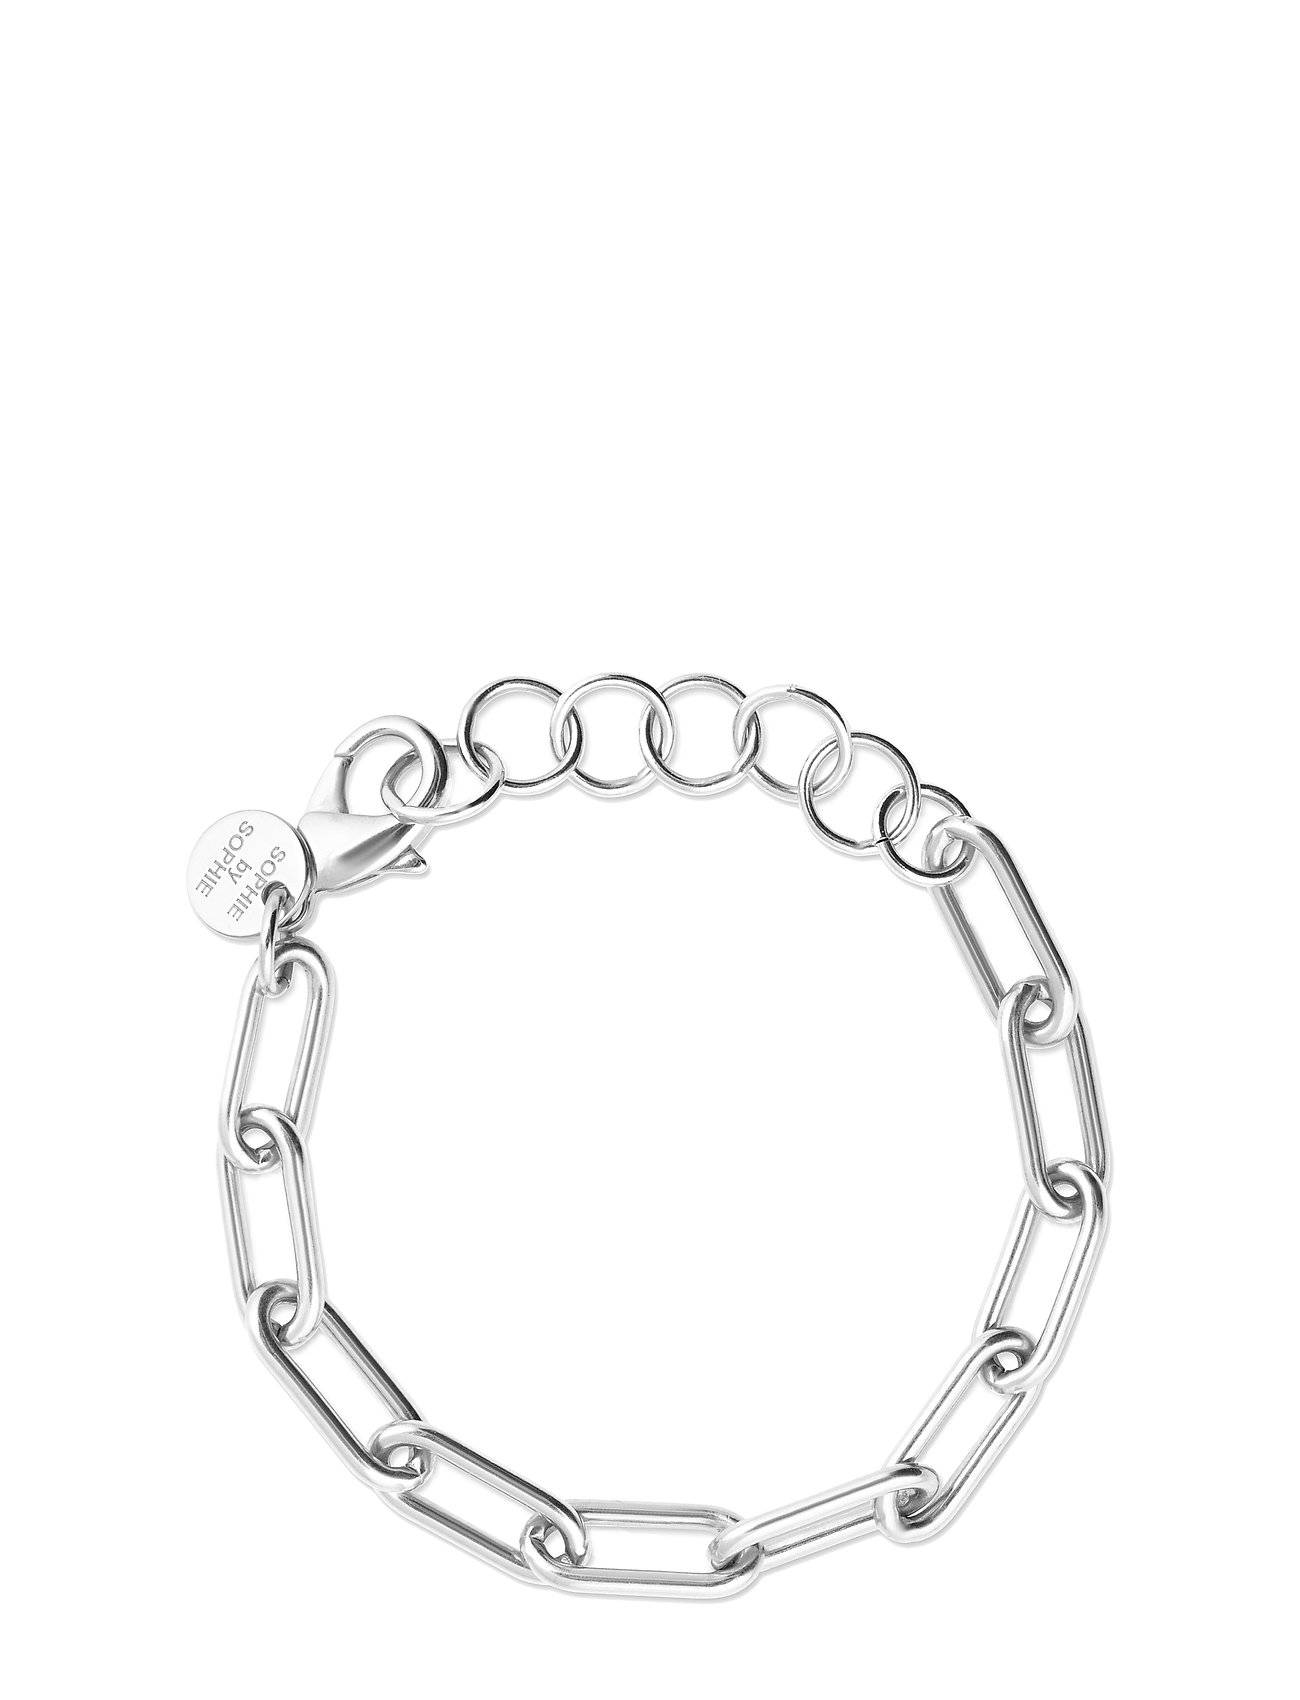 SOPHIE by SOPHIE Link Chain Bracelet Accessories Jewellery Bracelets Chain Bracelets Hopea SOPHIE By SOPHIE